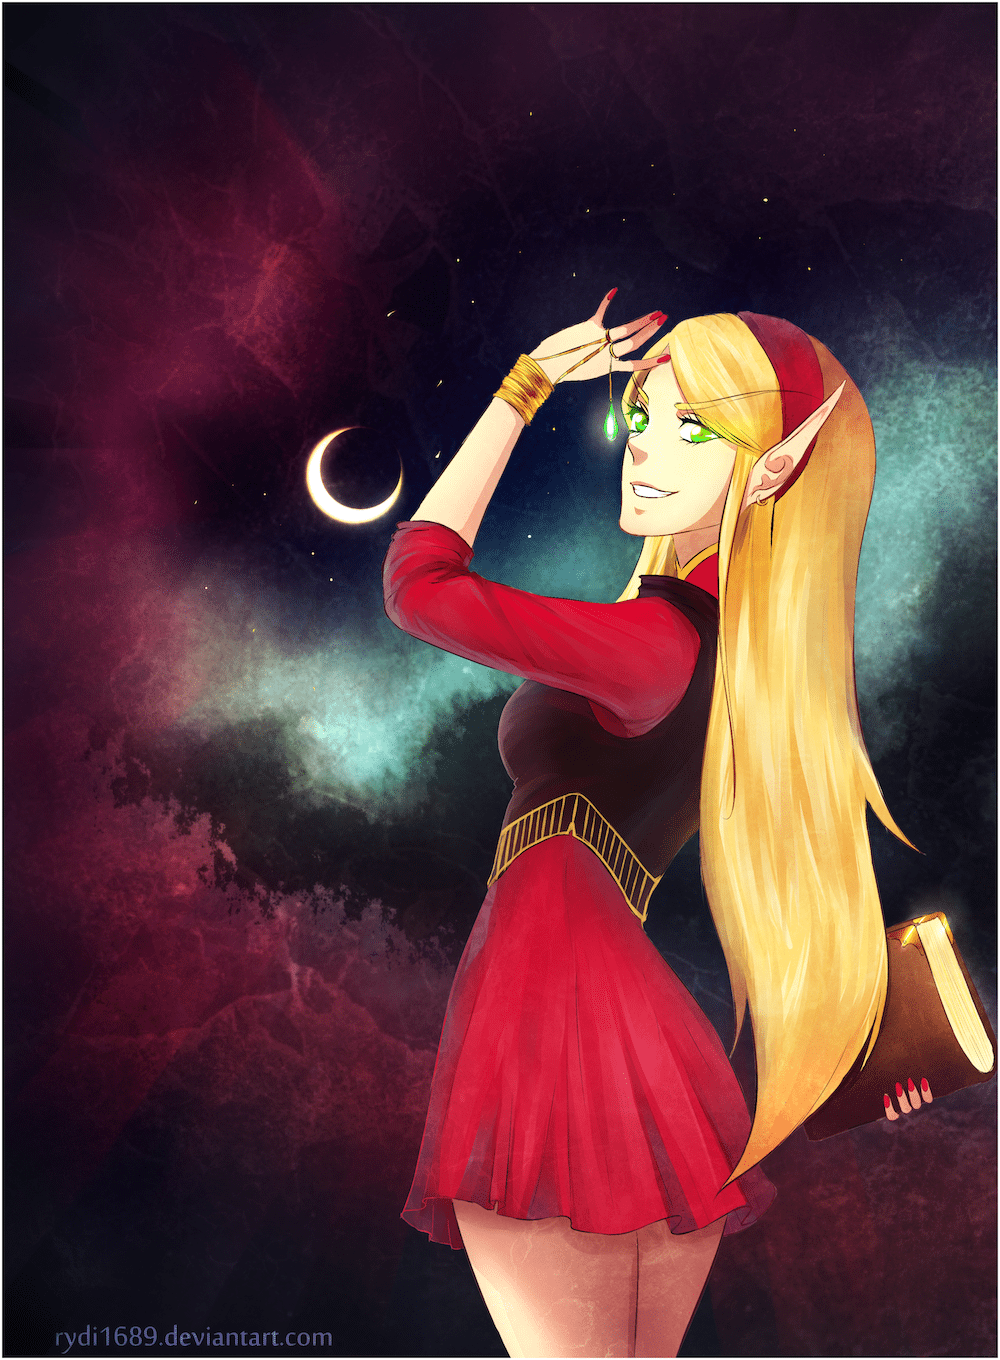 The Blood Elf by Lucía García via ArtCorgi